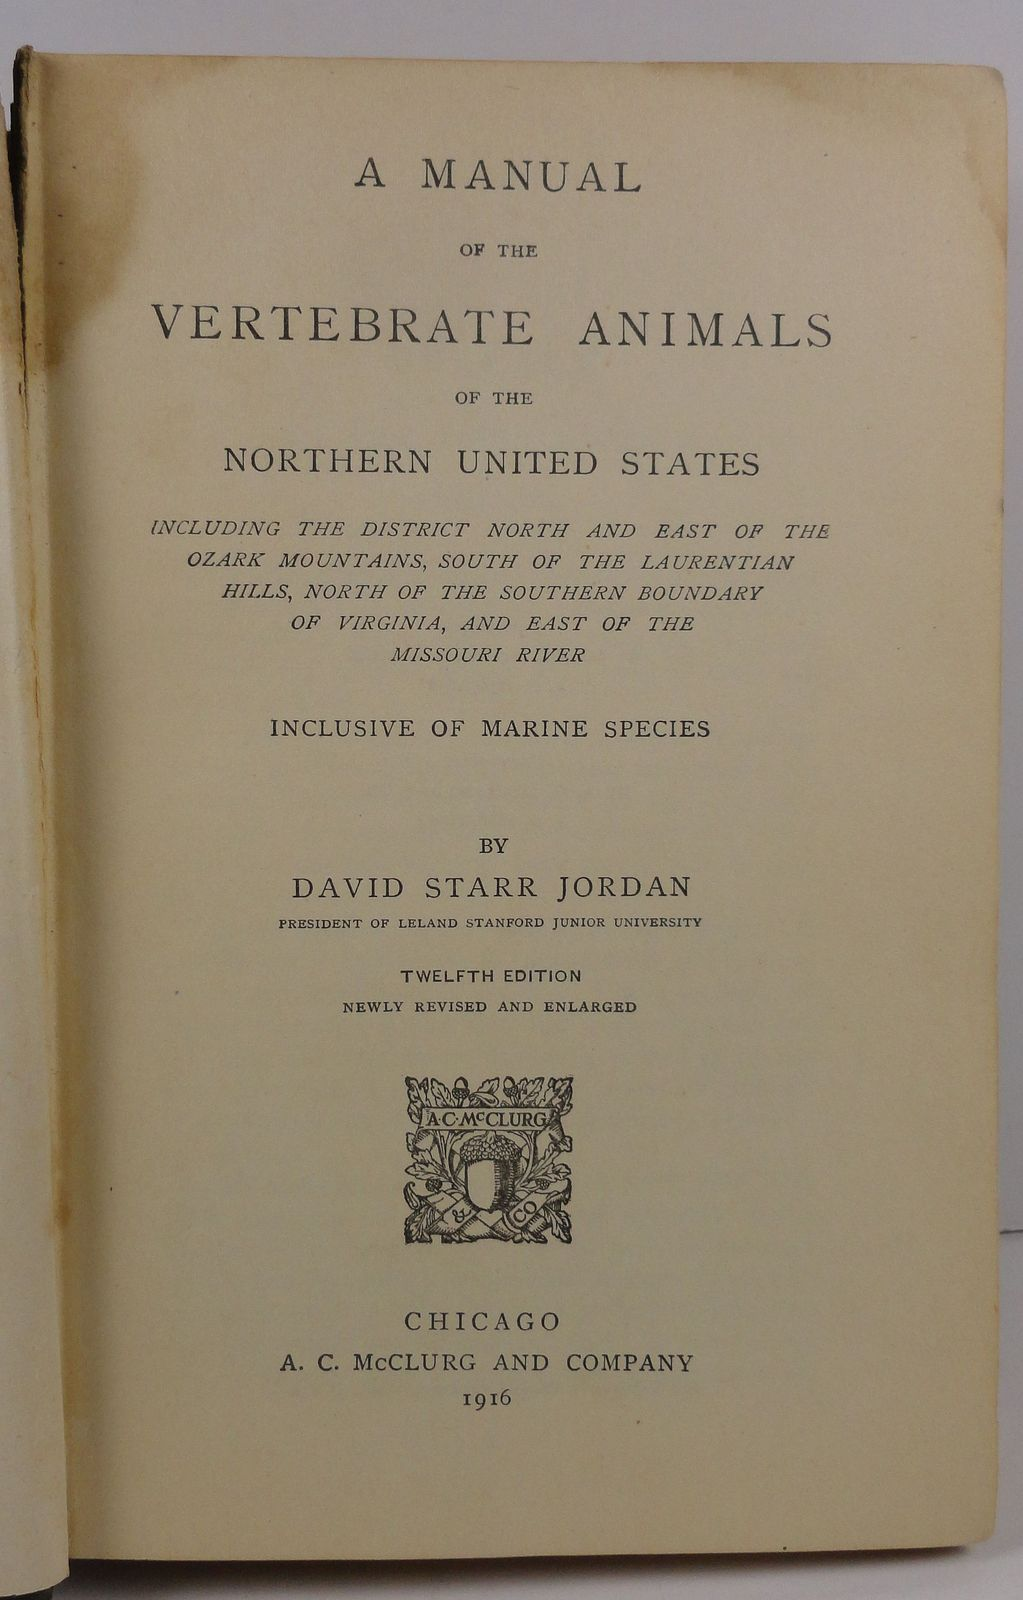 A Manual of the Vertebrate Animals David Starr Jordan 1916